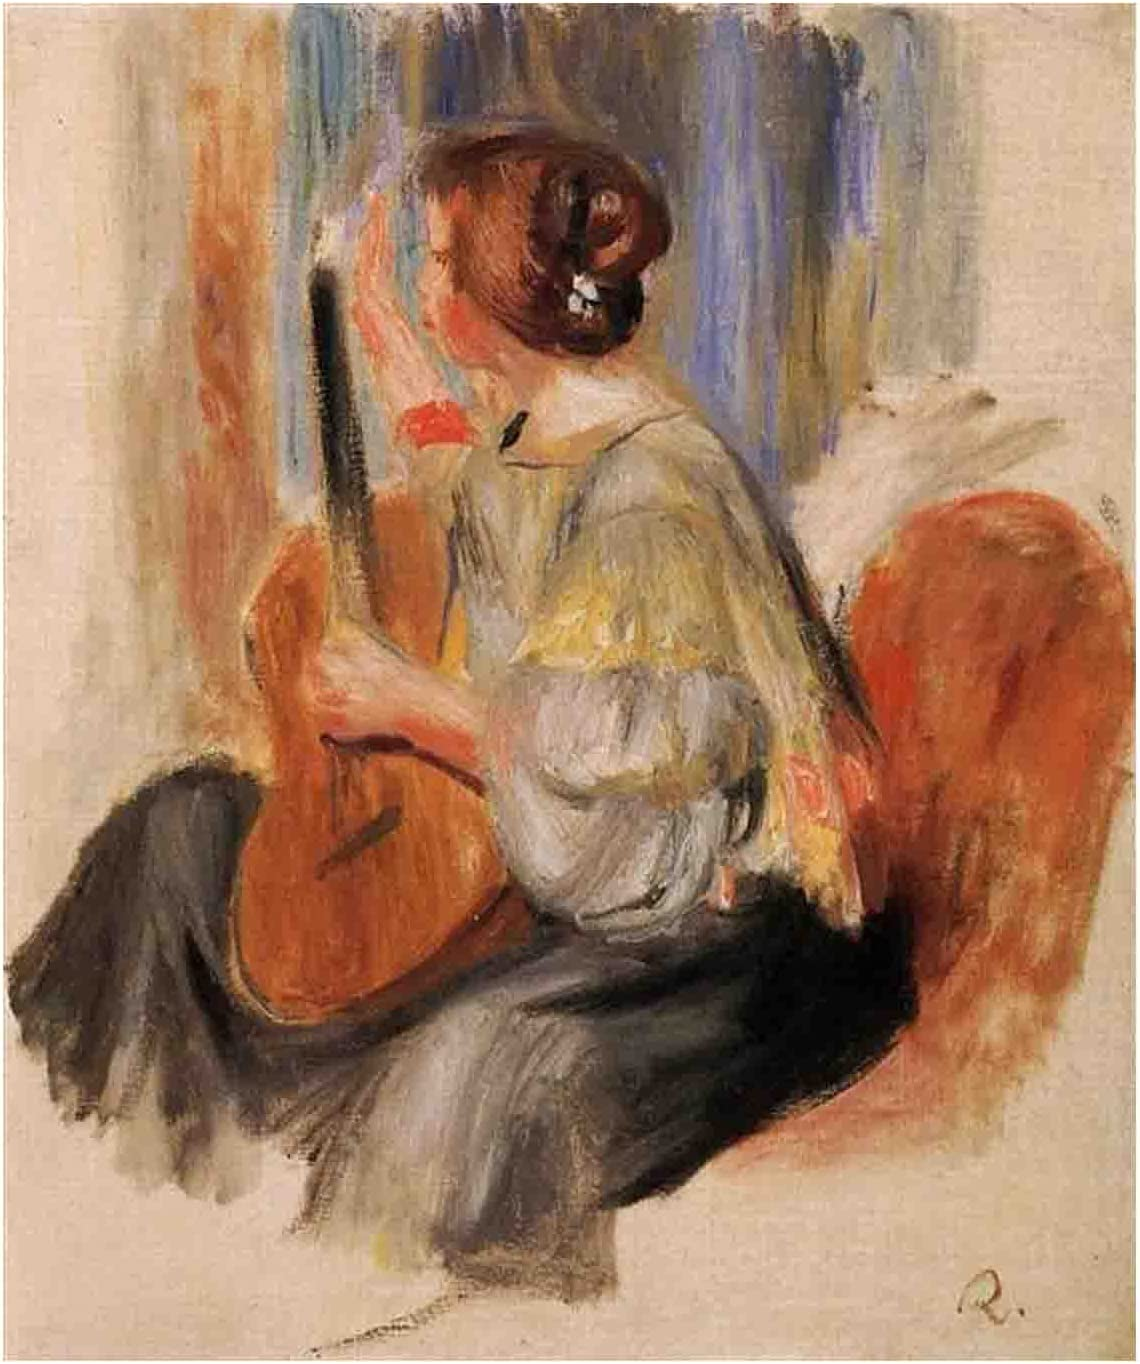 Woman with Import Guitar By Canvas Jacksonville Mall Pierre-Auguste Renoir Prints,Canva